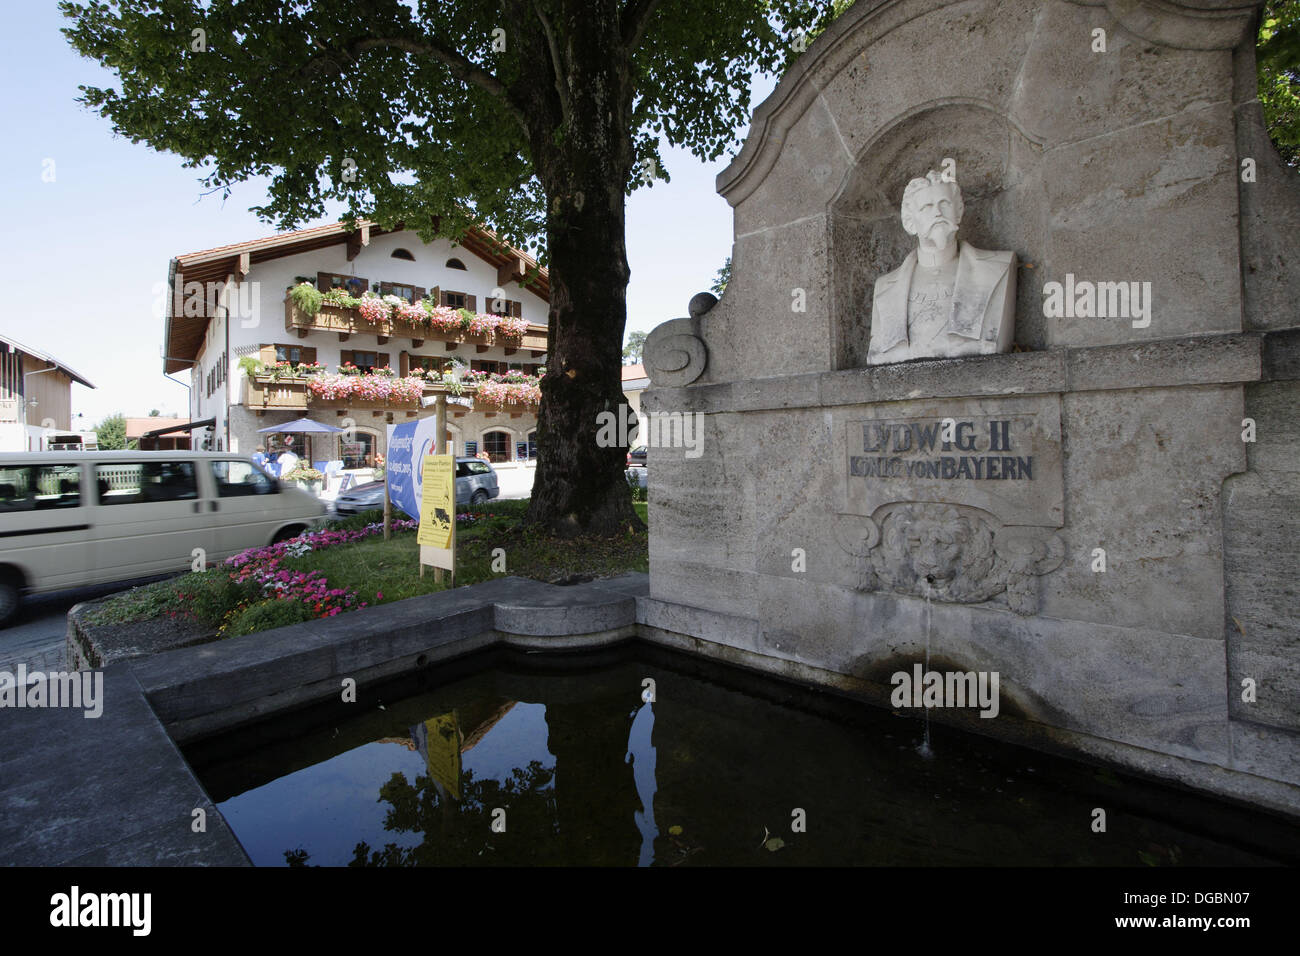 Fountain with bust of King Ludwig II of Bavaria in Grassau, Chiemgau, Upper Bavaria, Bavaria, Germany - Stock Image